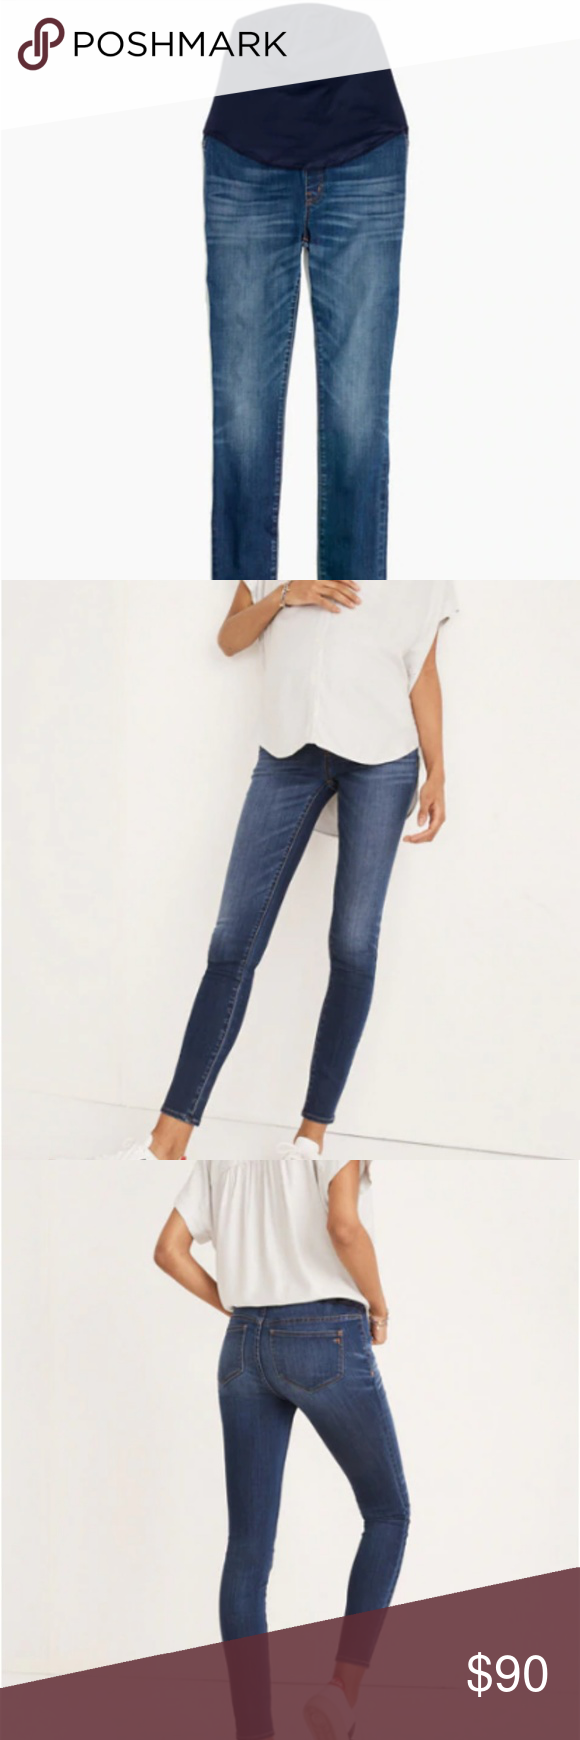 630ca70ec00dc Maternity Over-the-Belly Skinny Jeans Tencel Ed Madewell maternity jeans.  Purchased early